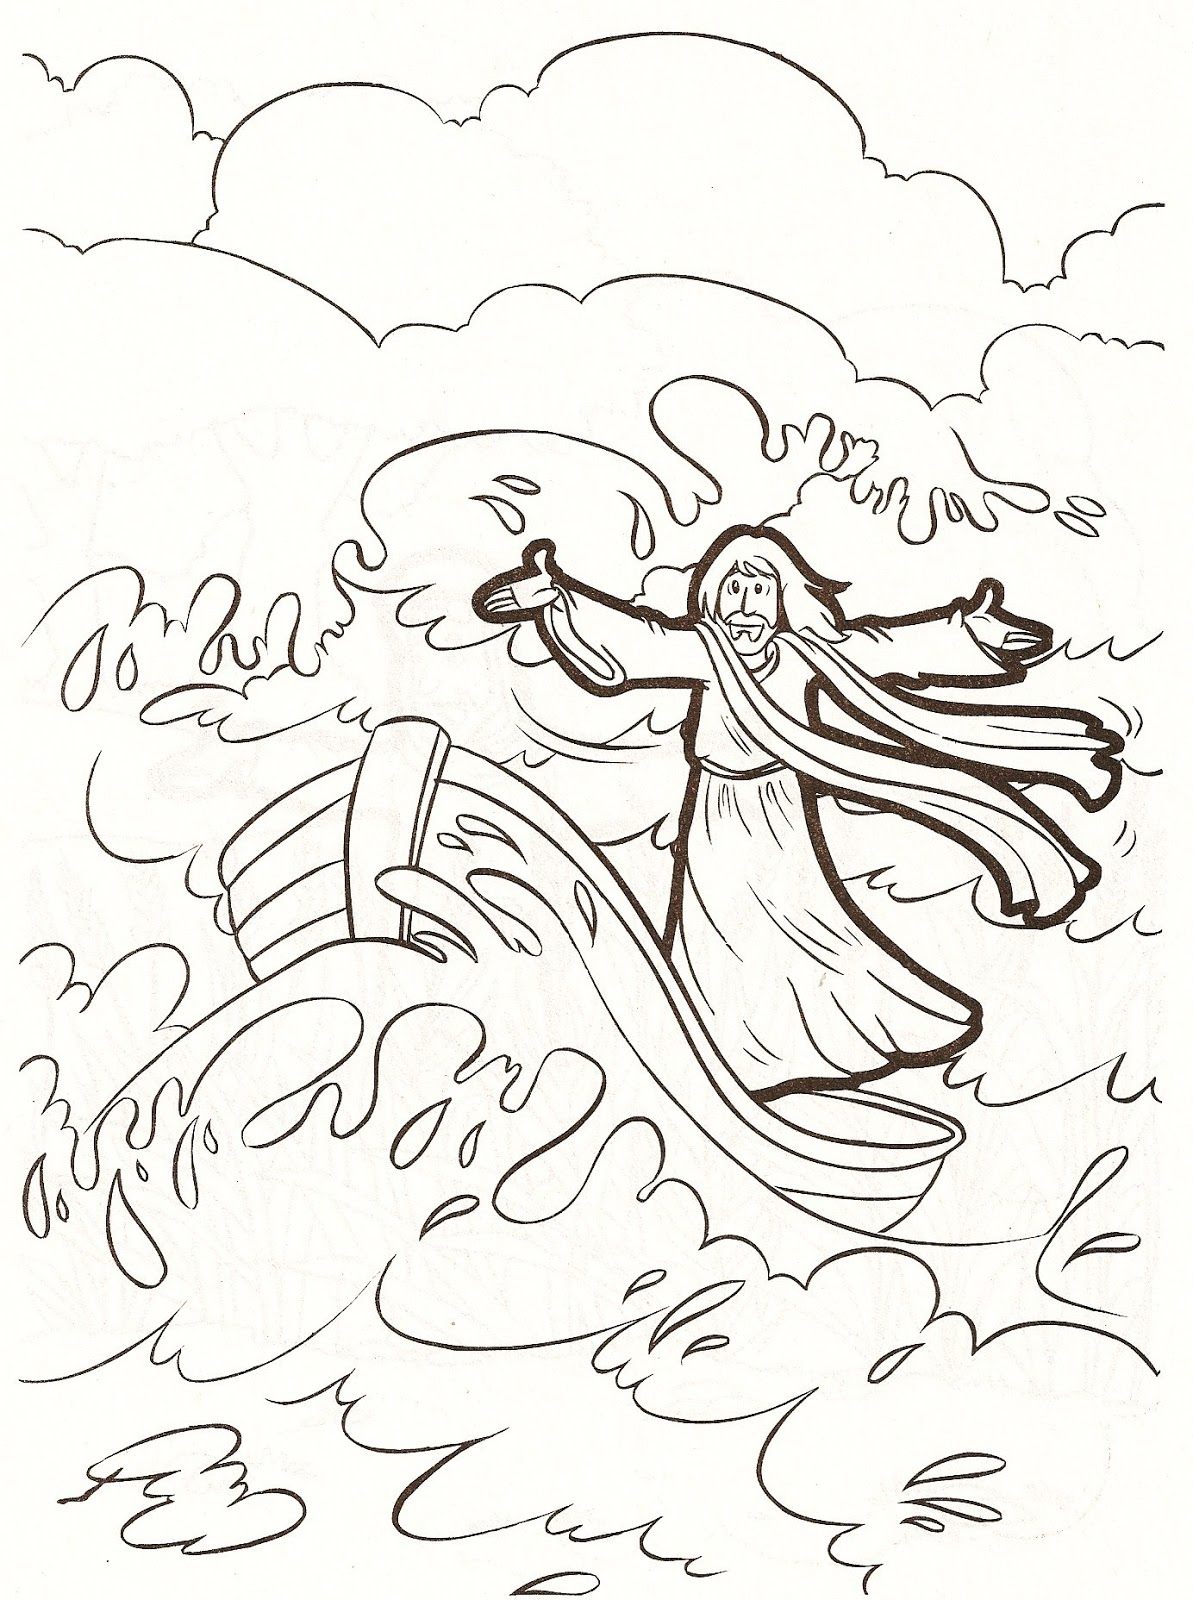 Jesus And The Storm Coloring Pages Pictures to Pin on Pinterest